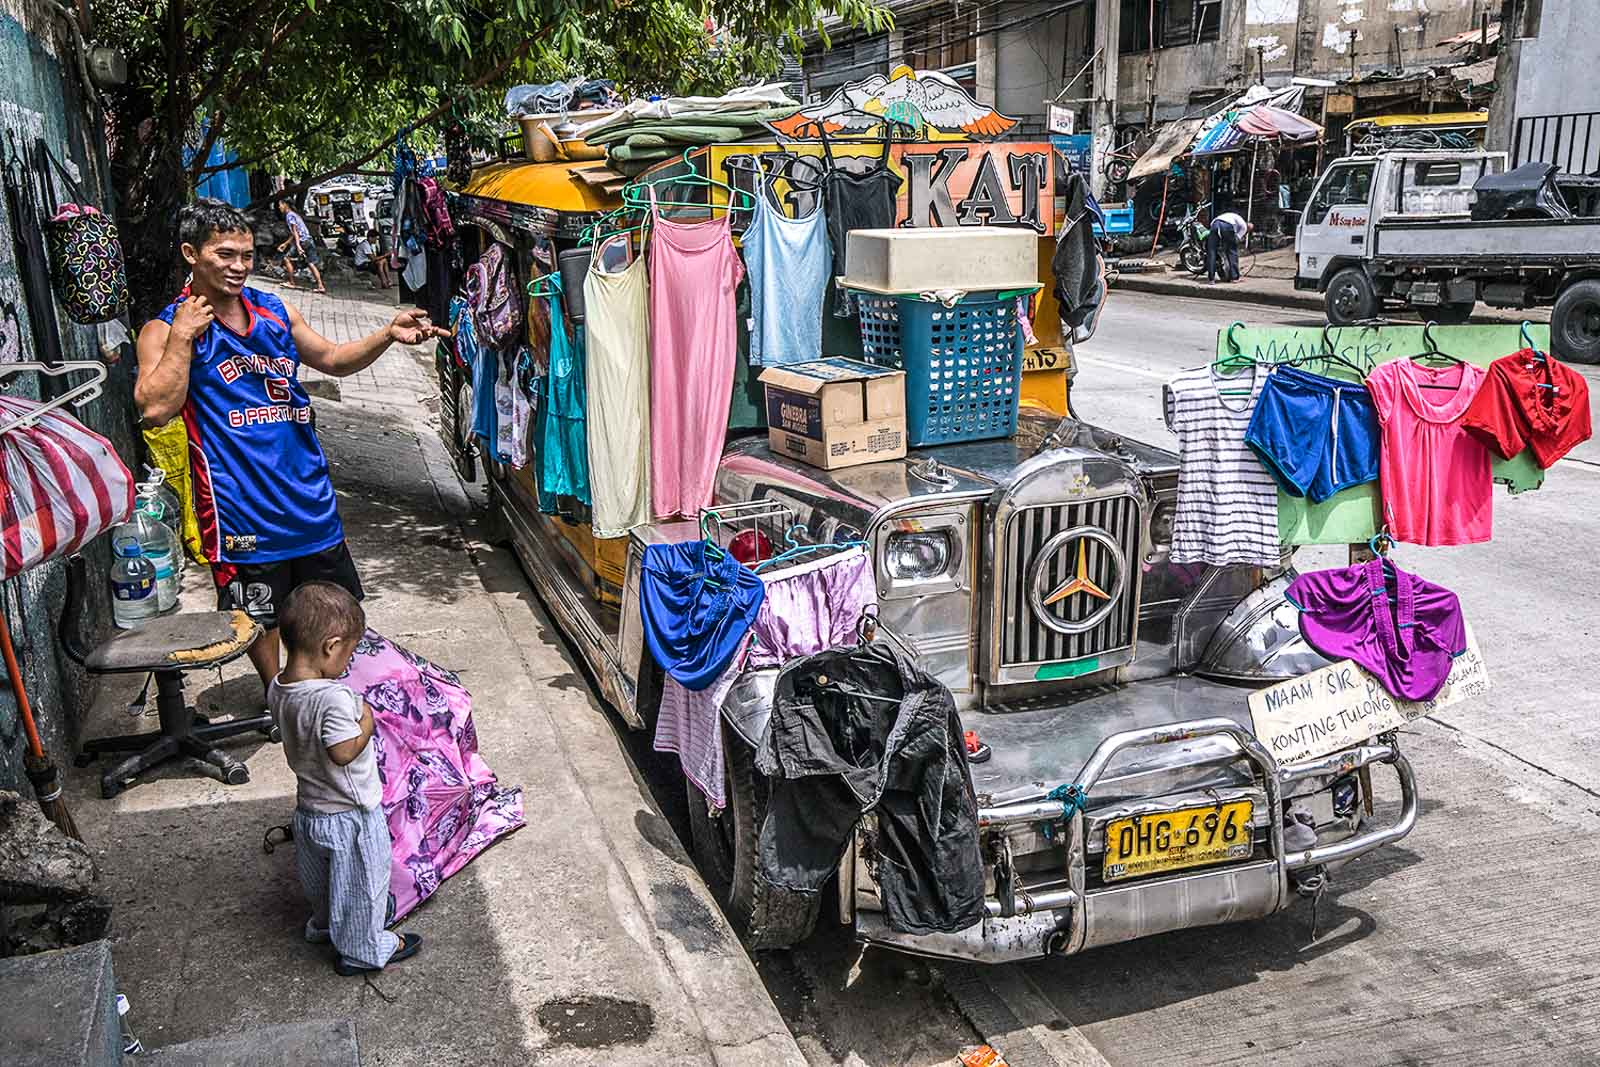 HARDEST HIT. After getting evicted from their residence in Tondo due to their failure to pay rent, jeepney driver Julius Evangelista and his family have lived inside their jeepney since the start of the Metro Manila lockdown. Photo by Darren Langit/Rappler